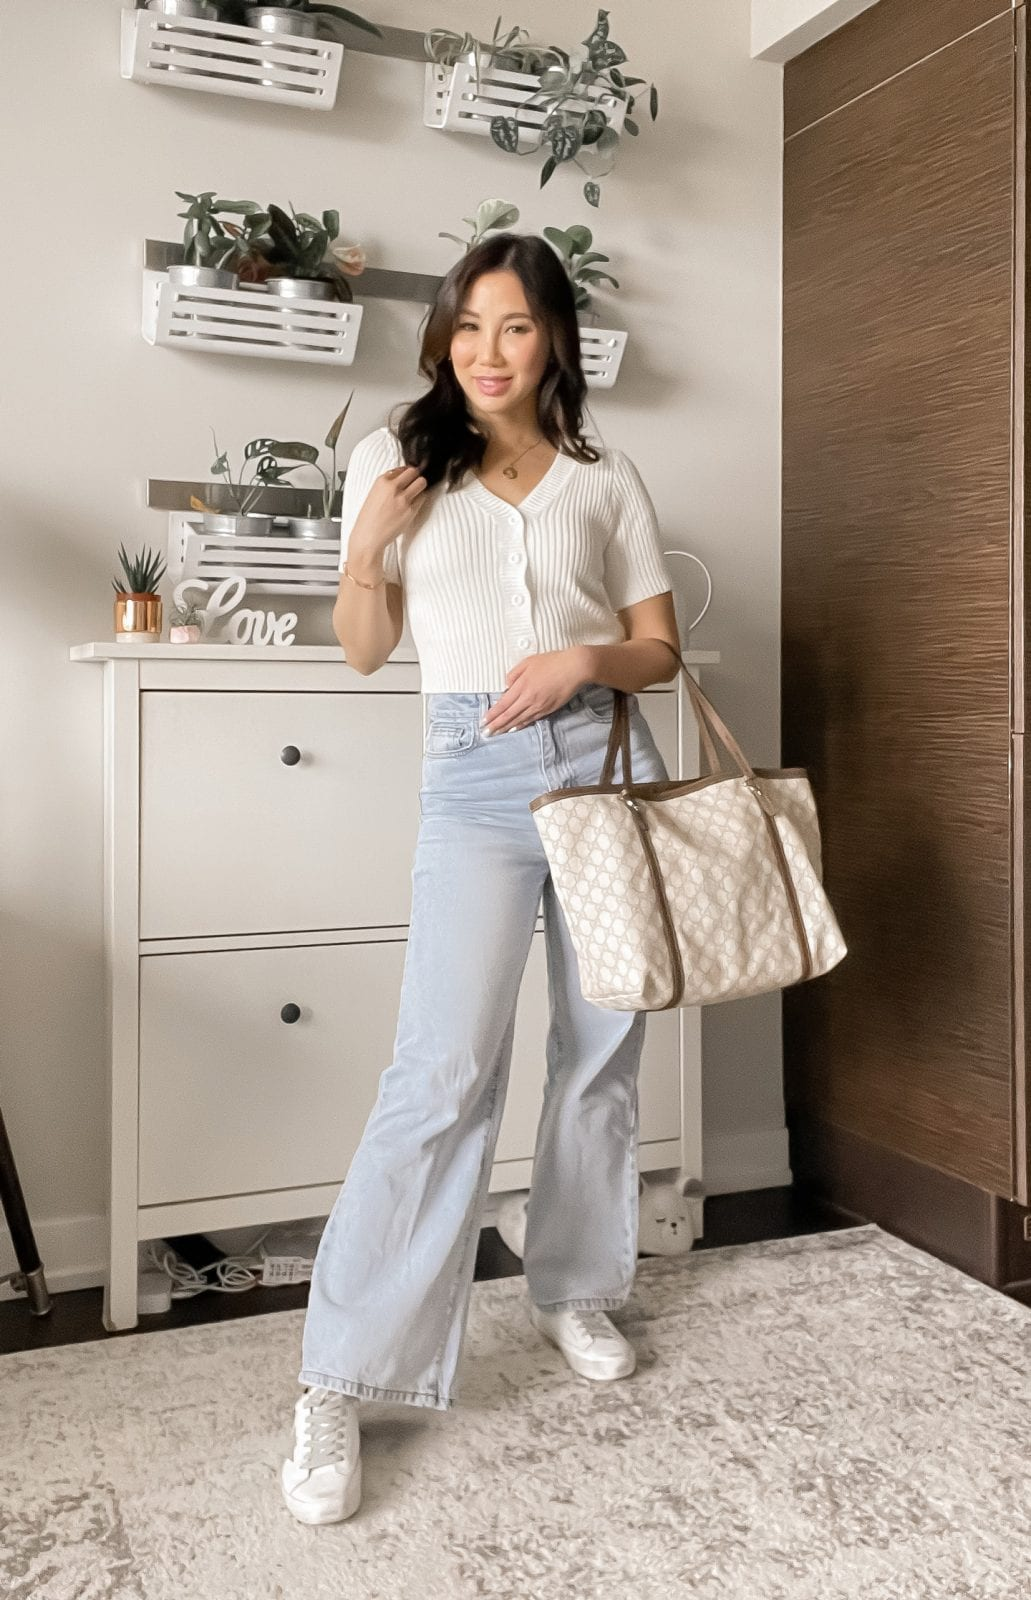 4 ways to wear wide leg jeans - casual look with sneakers styled by Eileen Lazazzera of yesmissy.com